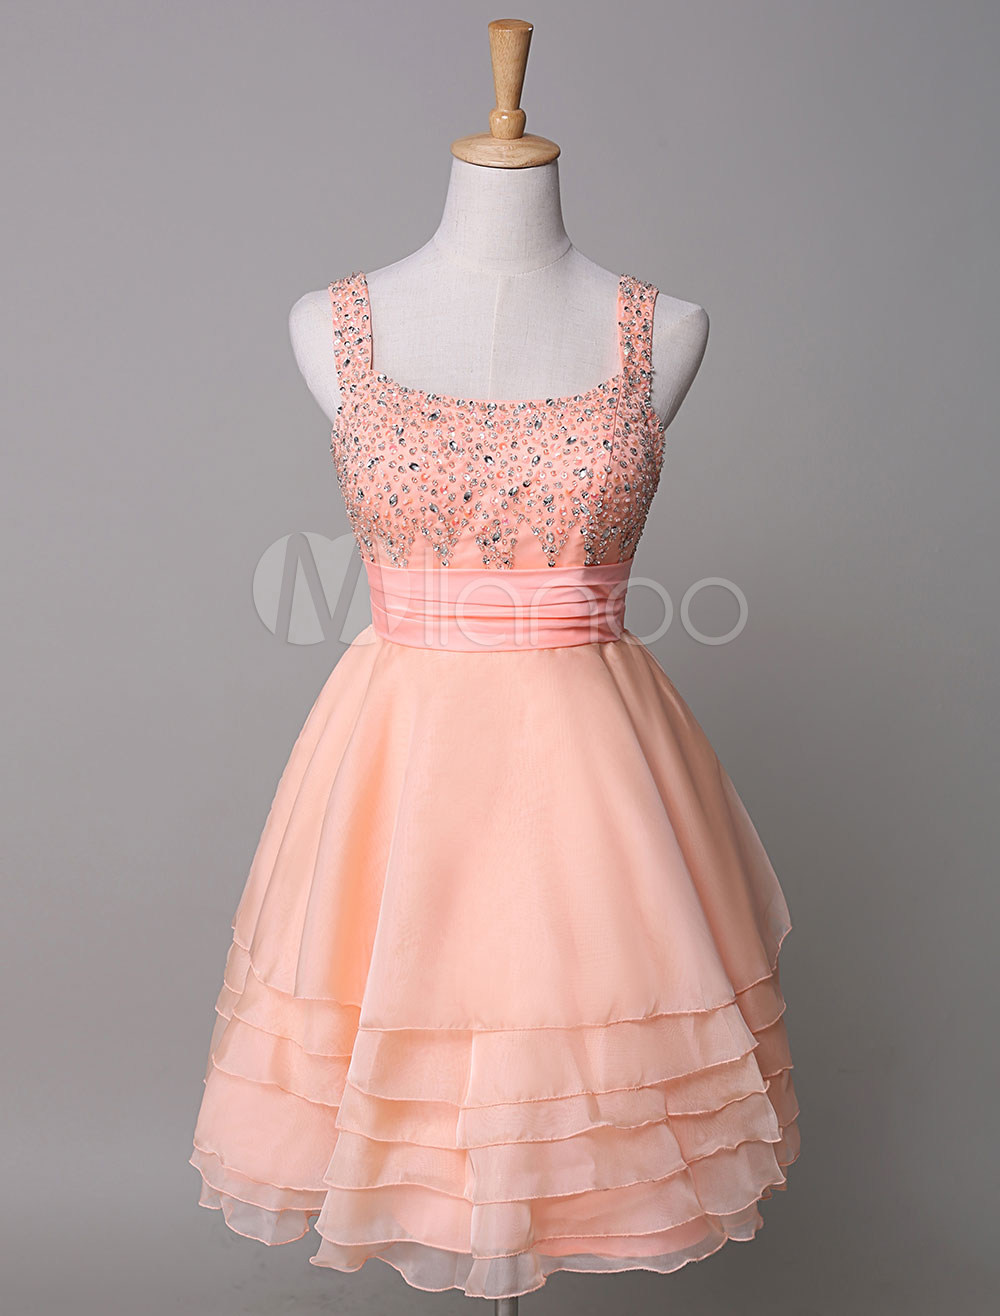 Peach Prom Dress Beading Backless Straps Tiered Chiffon A Line Short Homecoming Dress